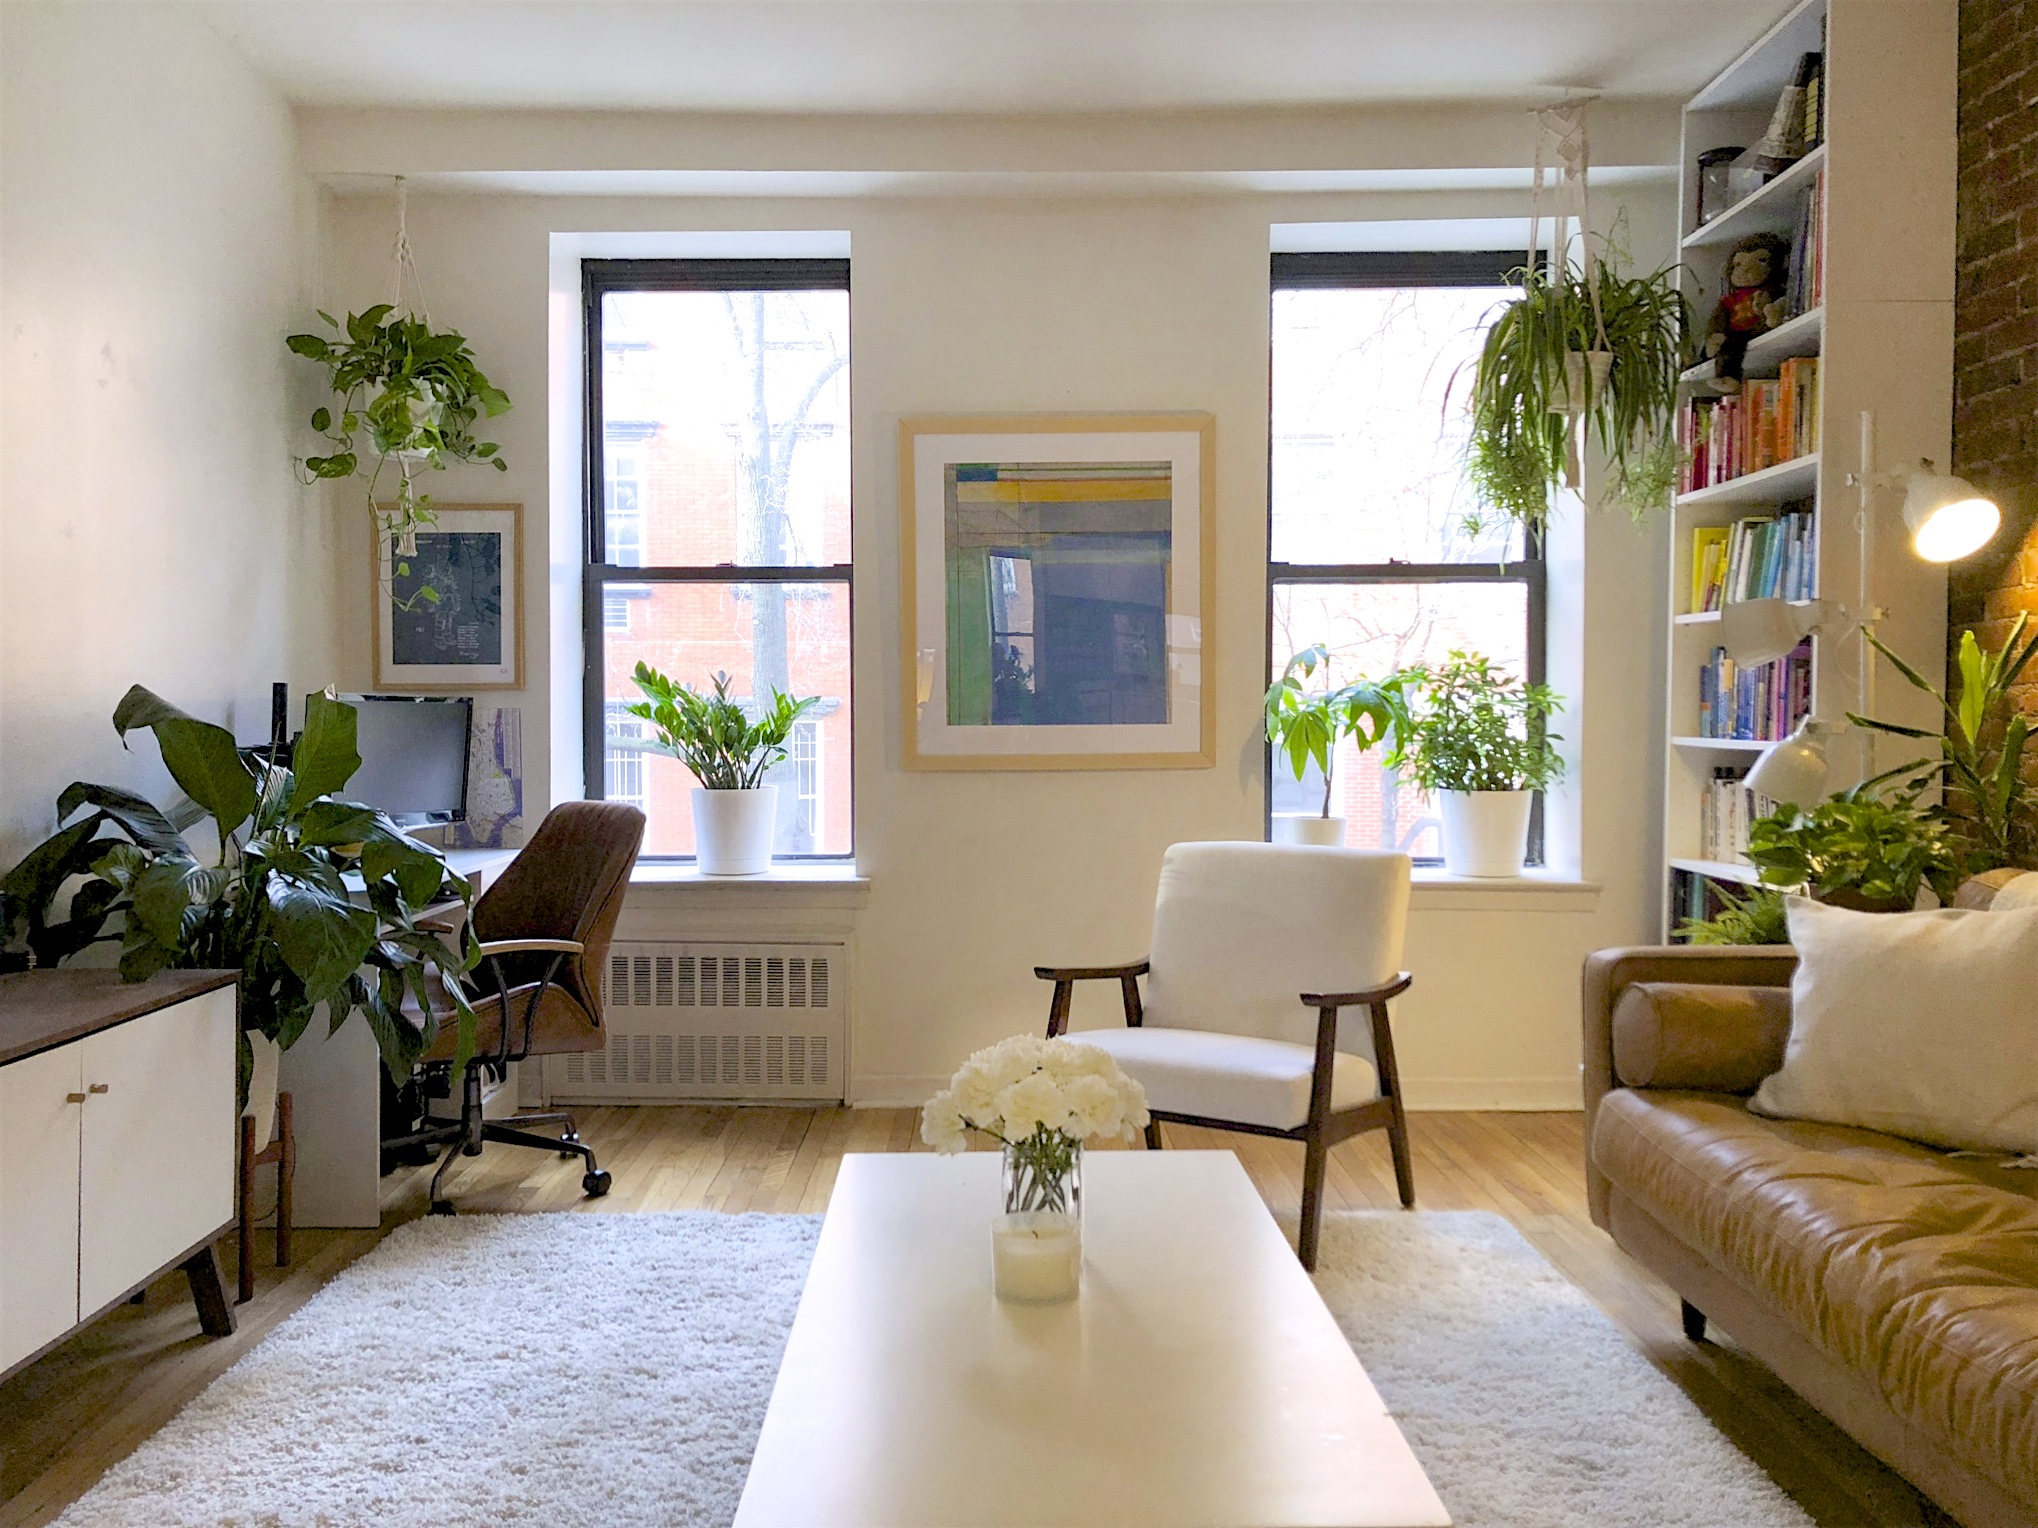 Small NYC Apartment Rental Filled With Plants | Apartment ...